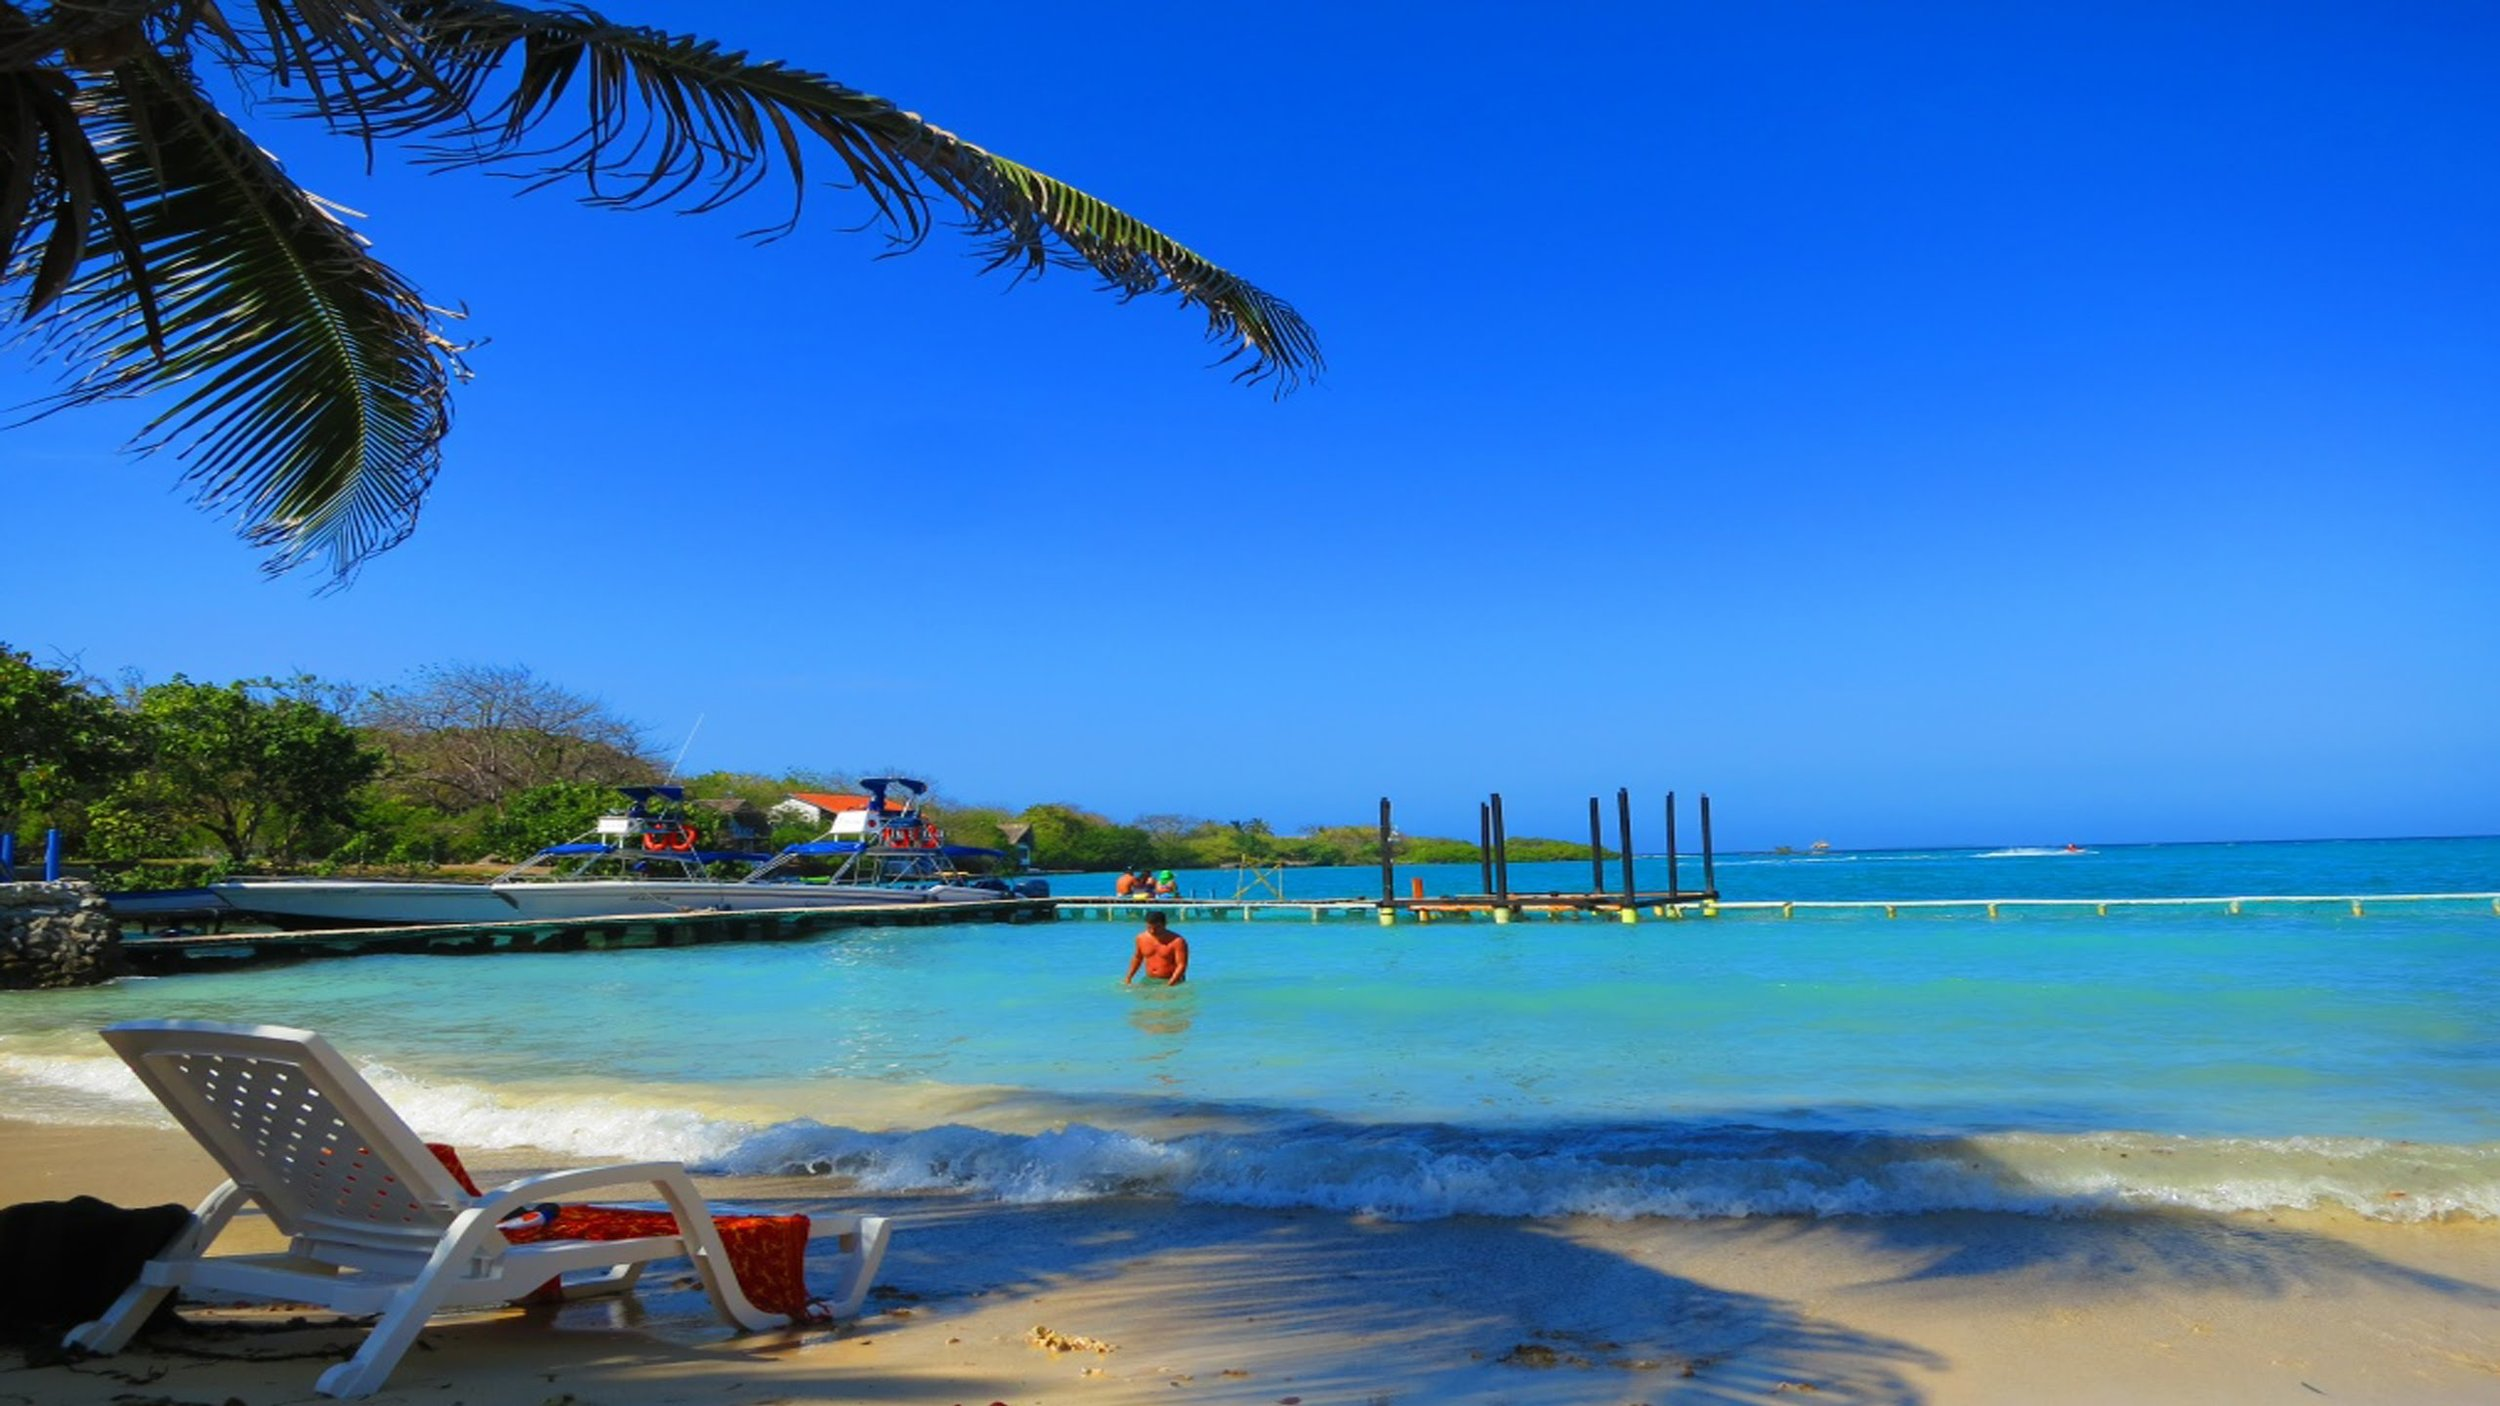 One of the best things to do while in Colombia is visit the Rosario Islands